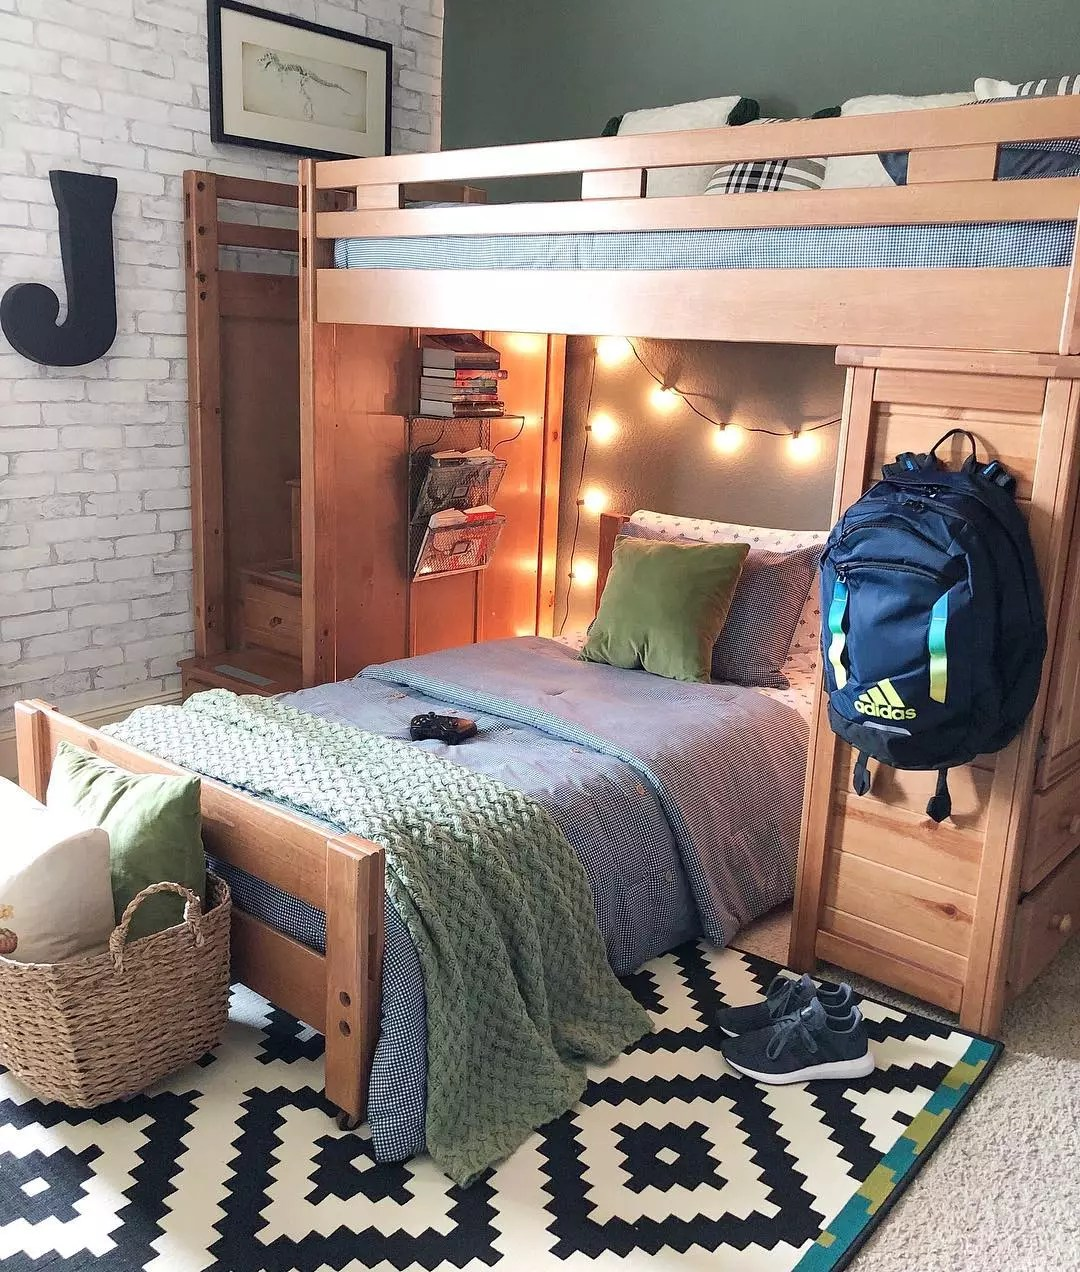 Bedroom with Bunk Beds and Fun Zig-Zag Carpet. Photo by Instagram user @blessedonbluefinch